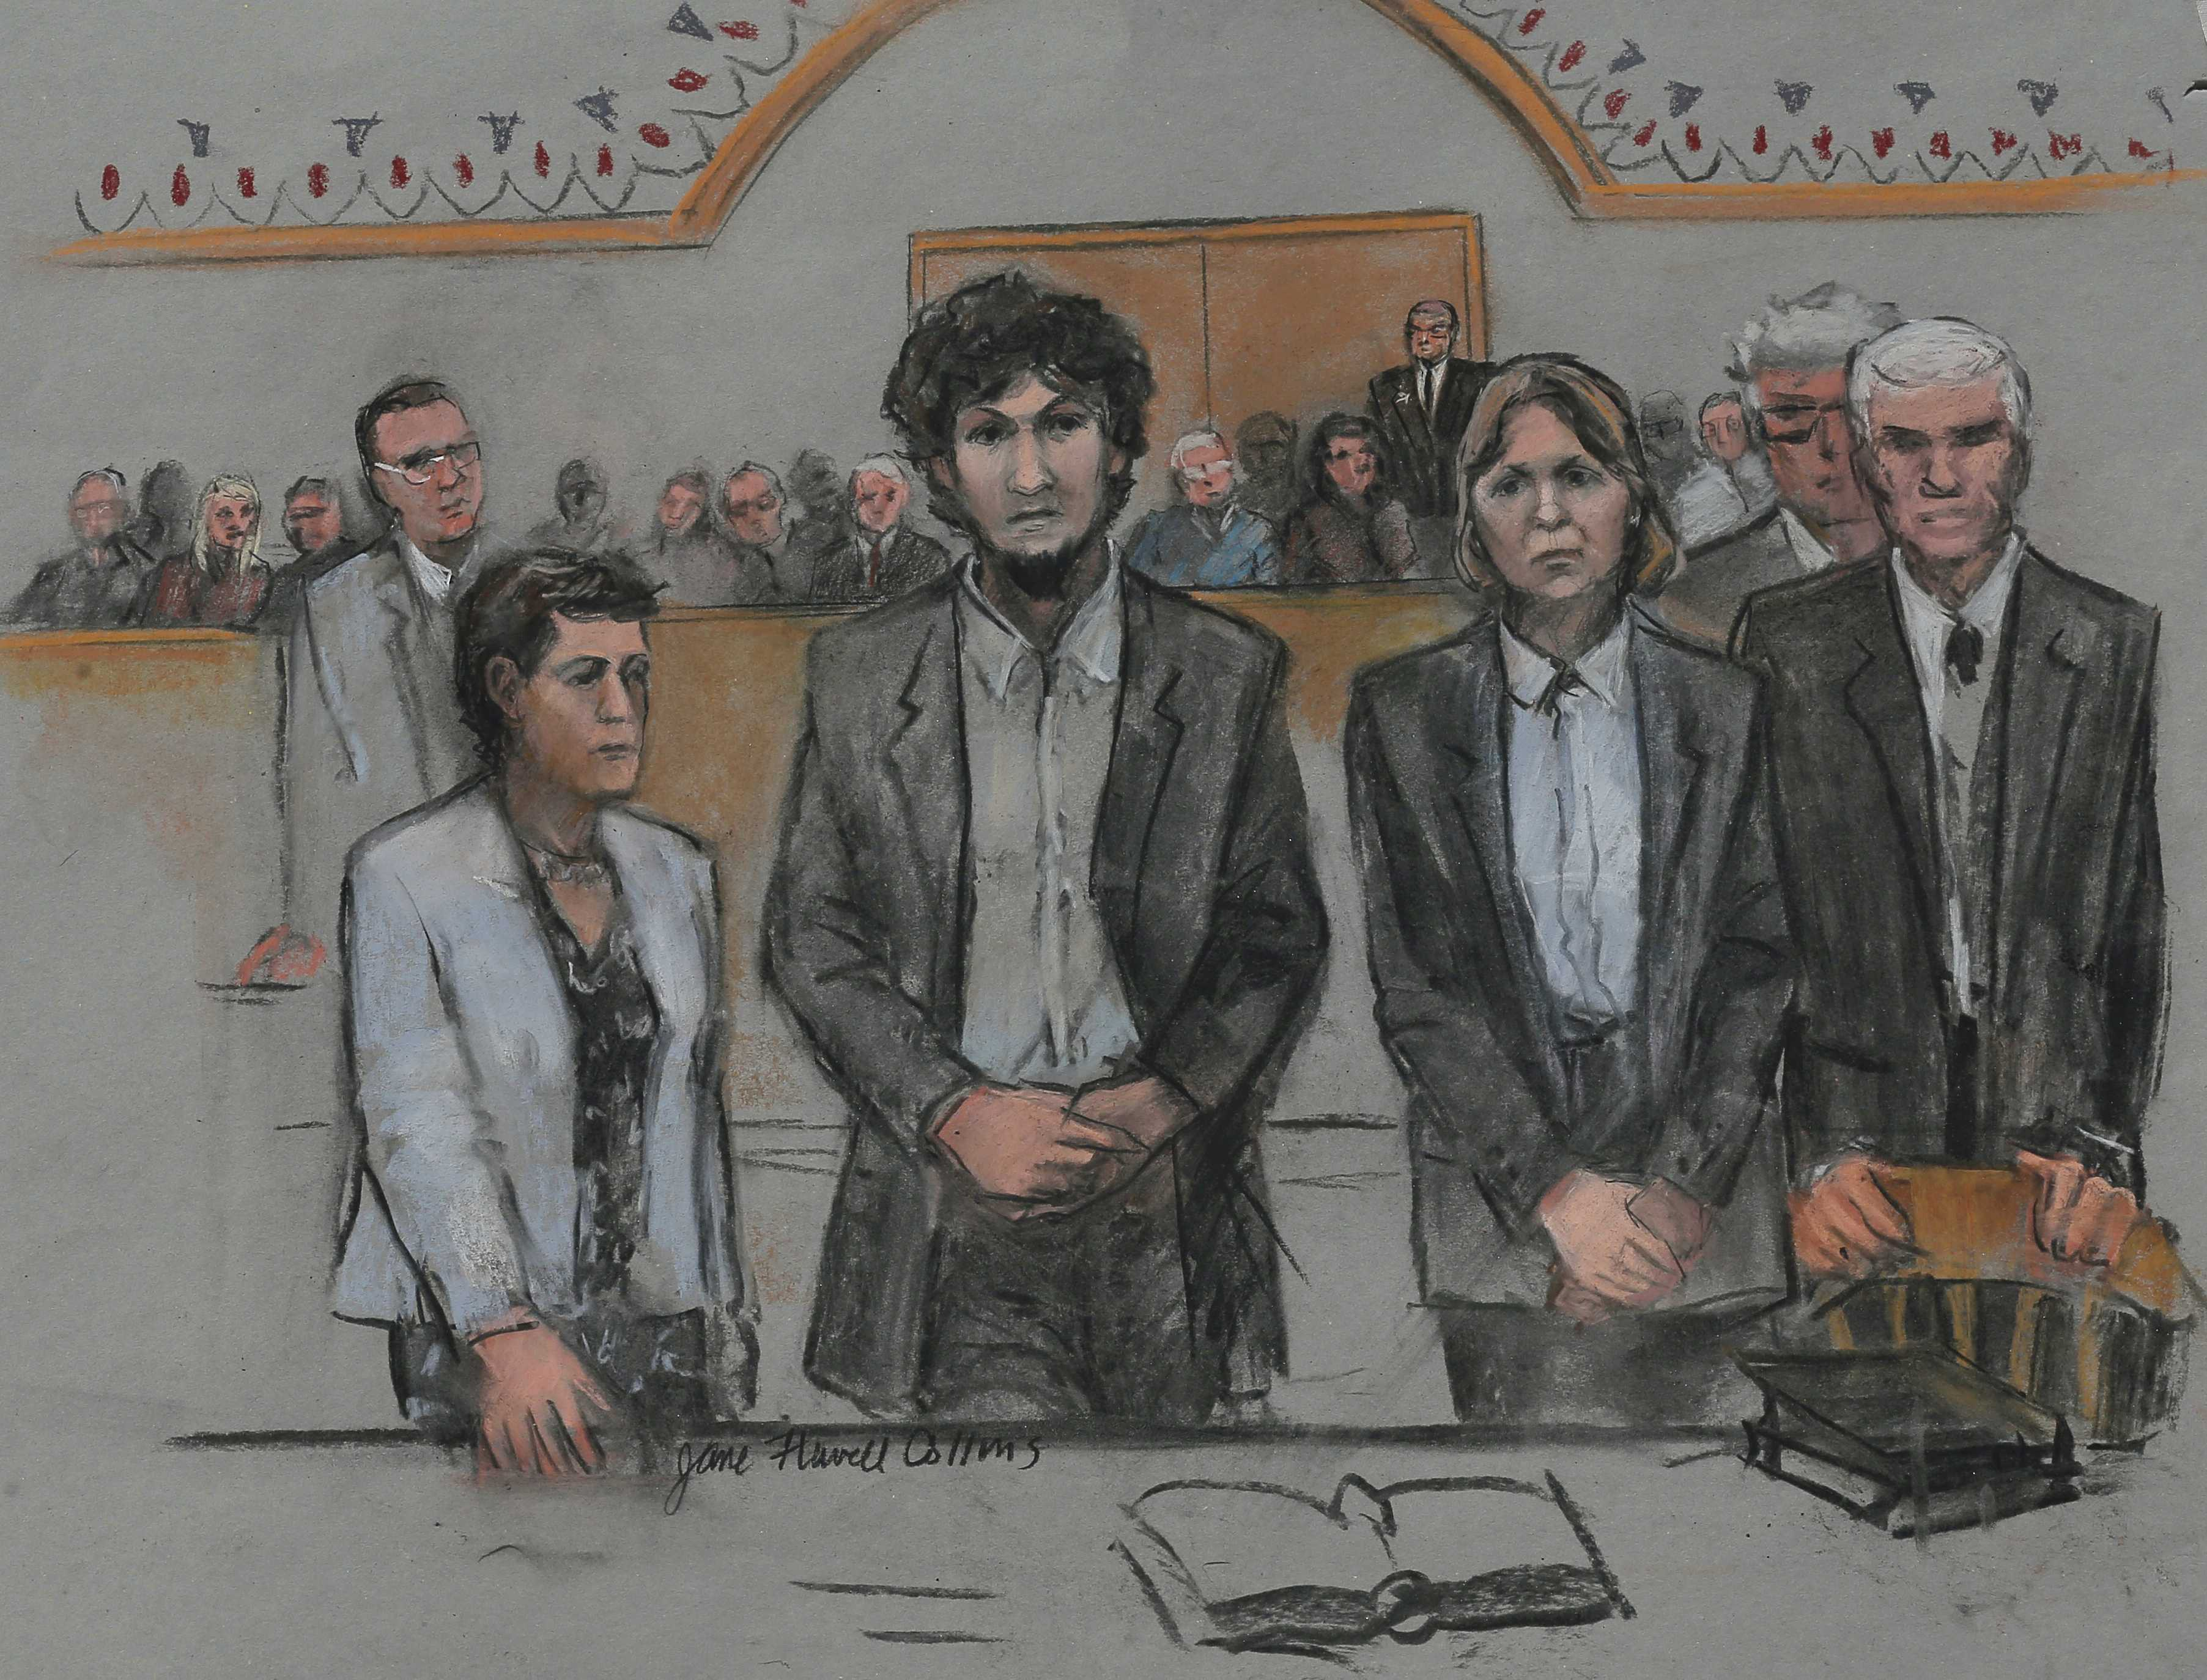 Dzhokhar Tsarnaev and his defense attorney Judy Clarke (2nd from right) are shown in a sketch after sentencing at the federal courthouse in Boston, May 15. Jane Flavell Collins / Reuters.